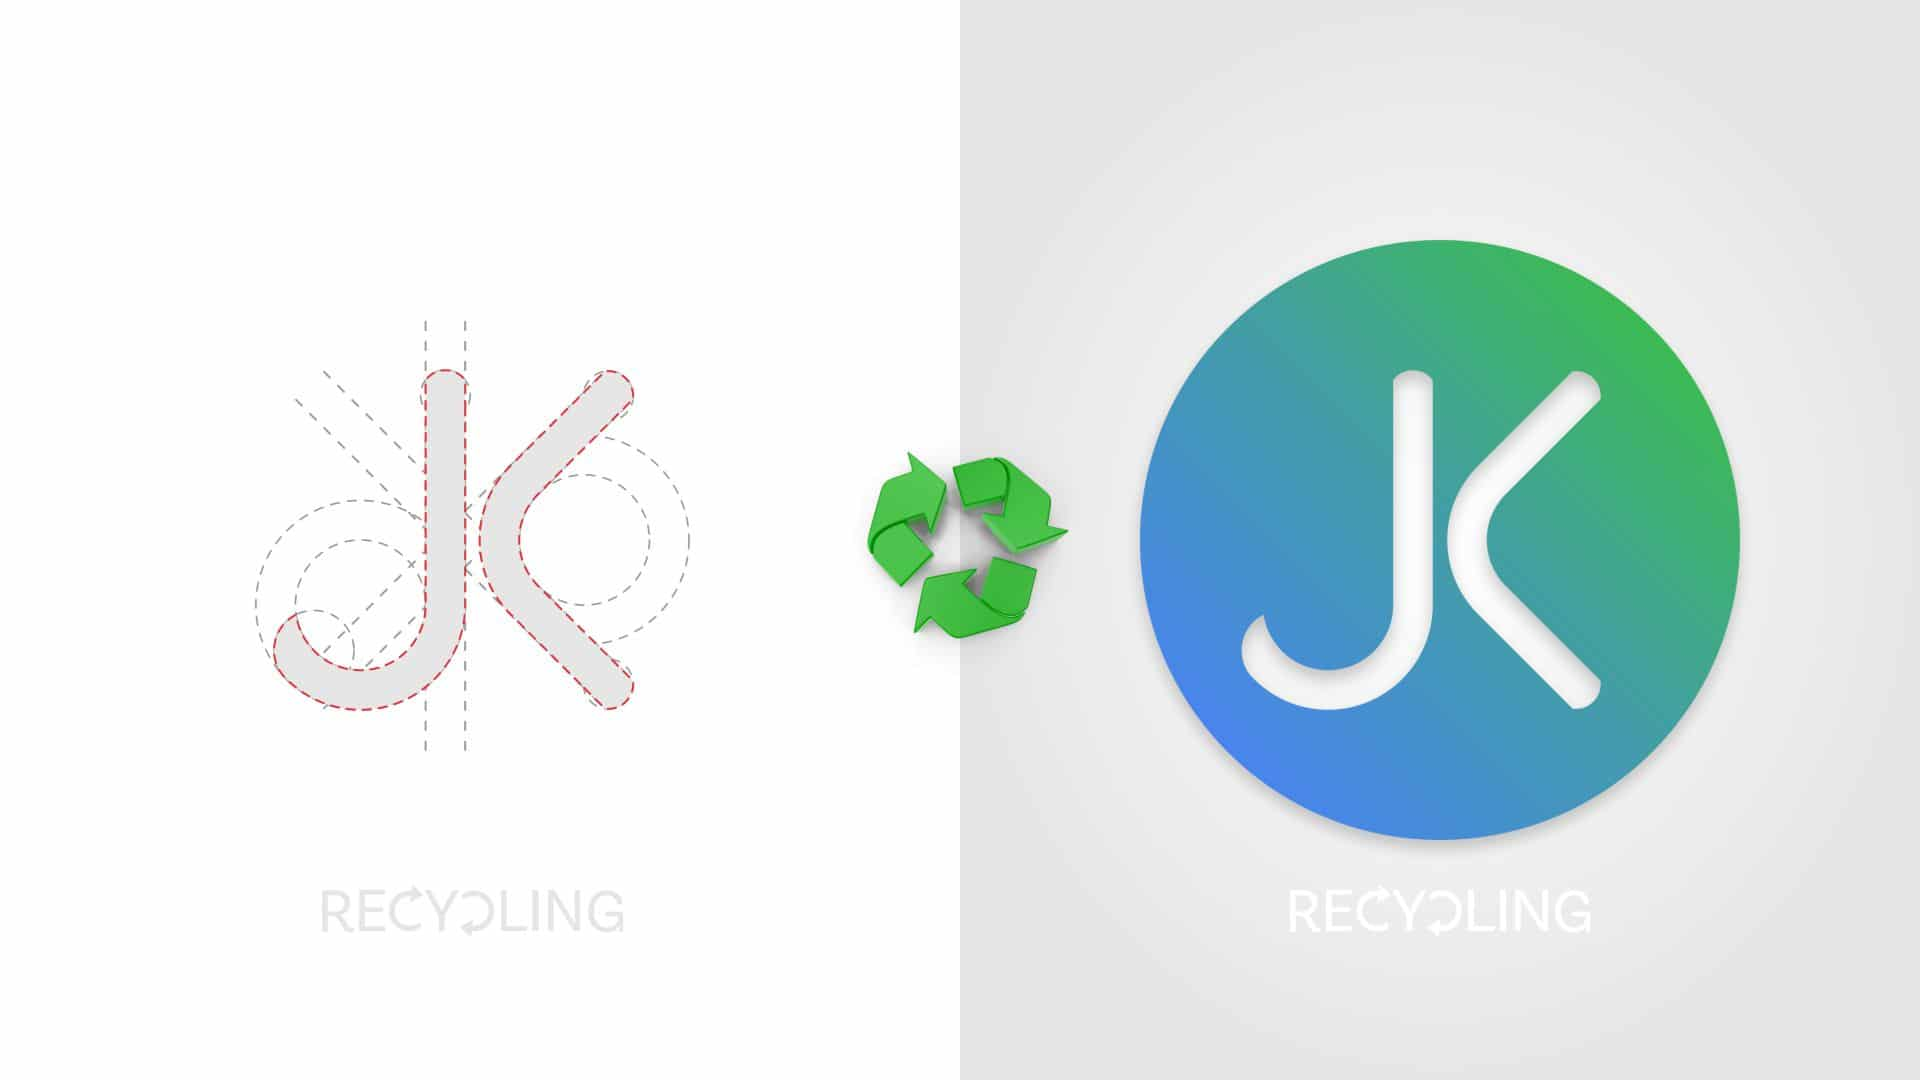 Recycling Industry Logo Design With Golden Ratio